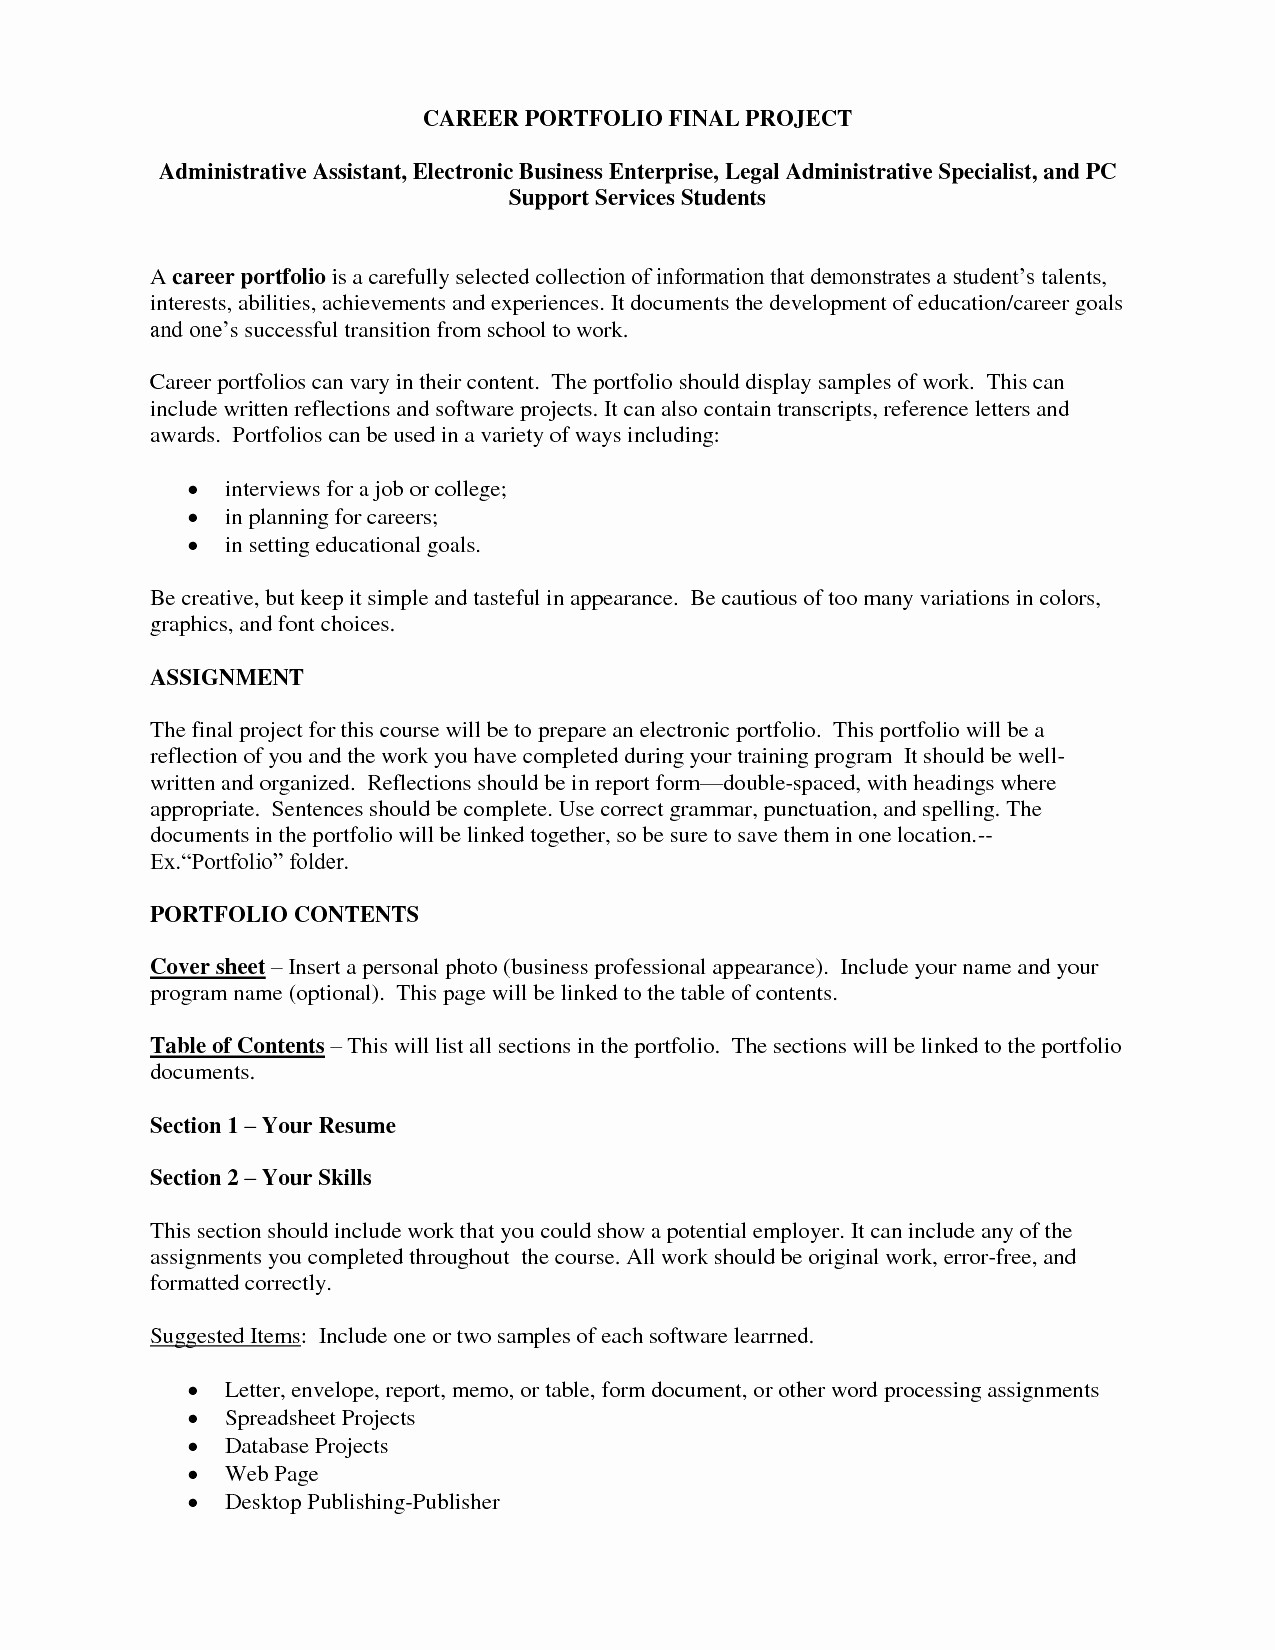 Administrative Assistant Cover Letters Administrative Assistant Cover Letter Template Word New Unique